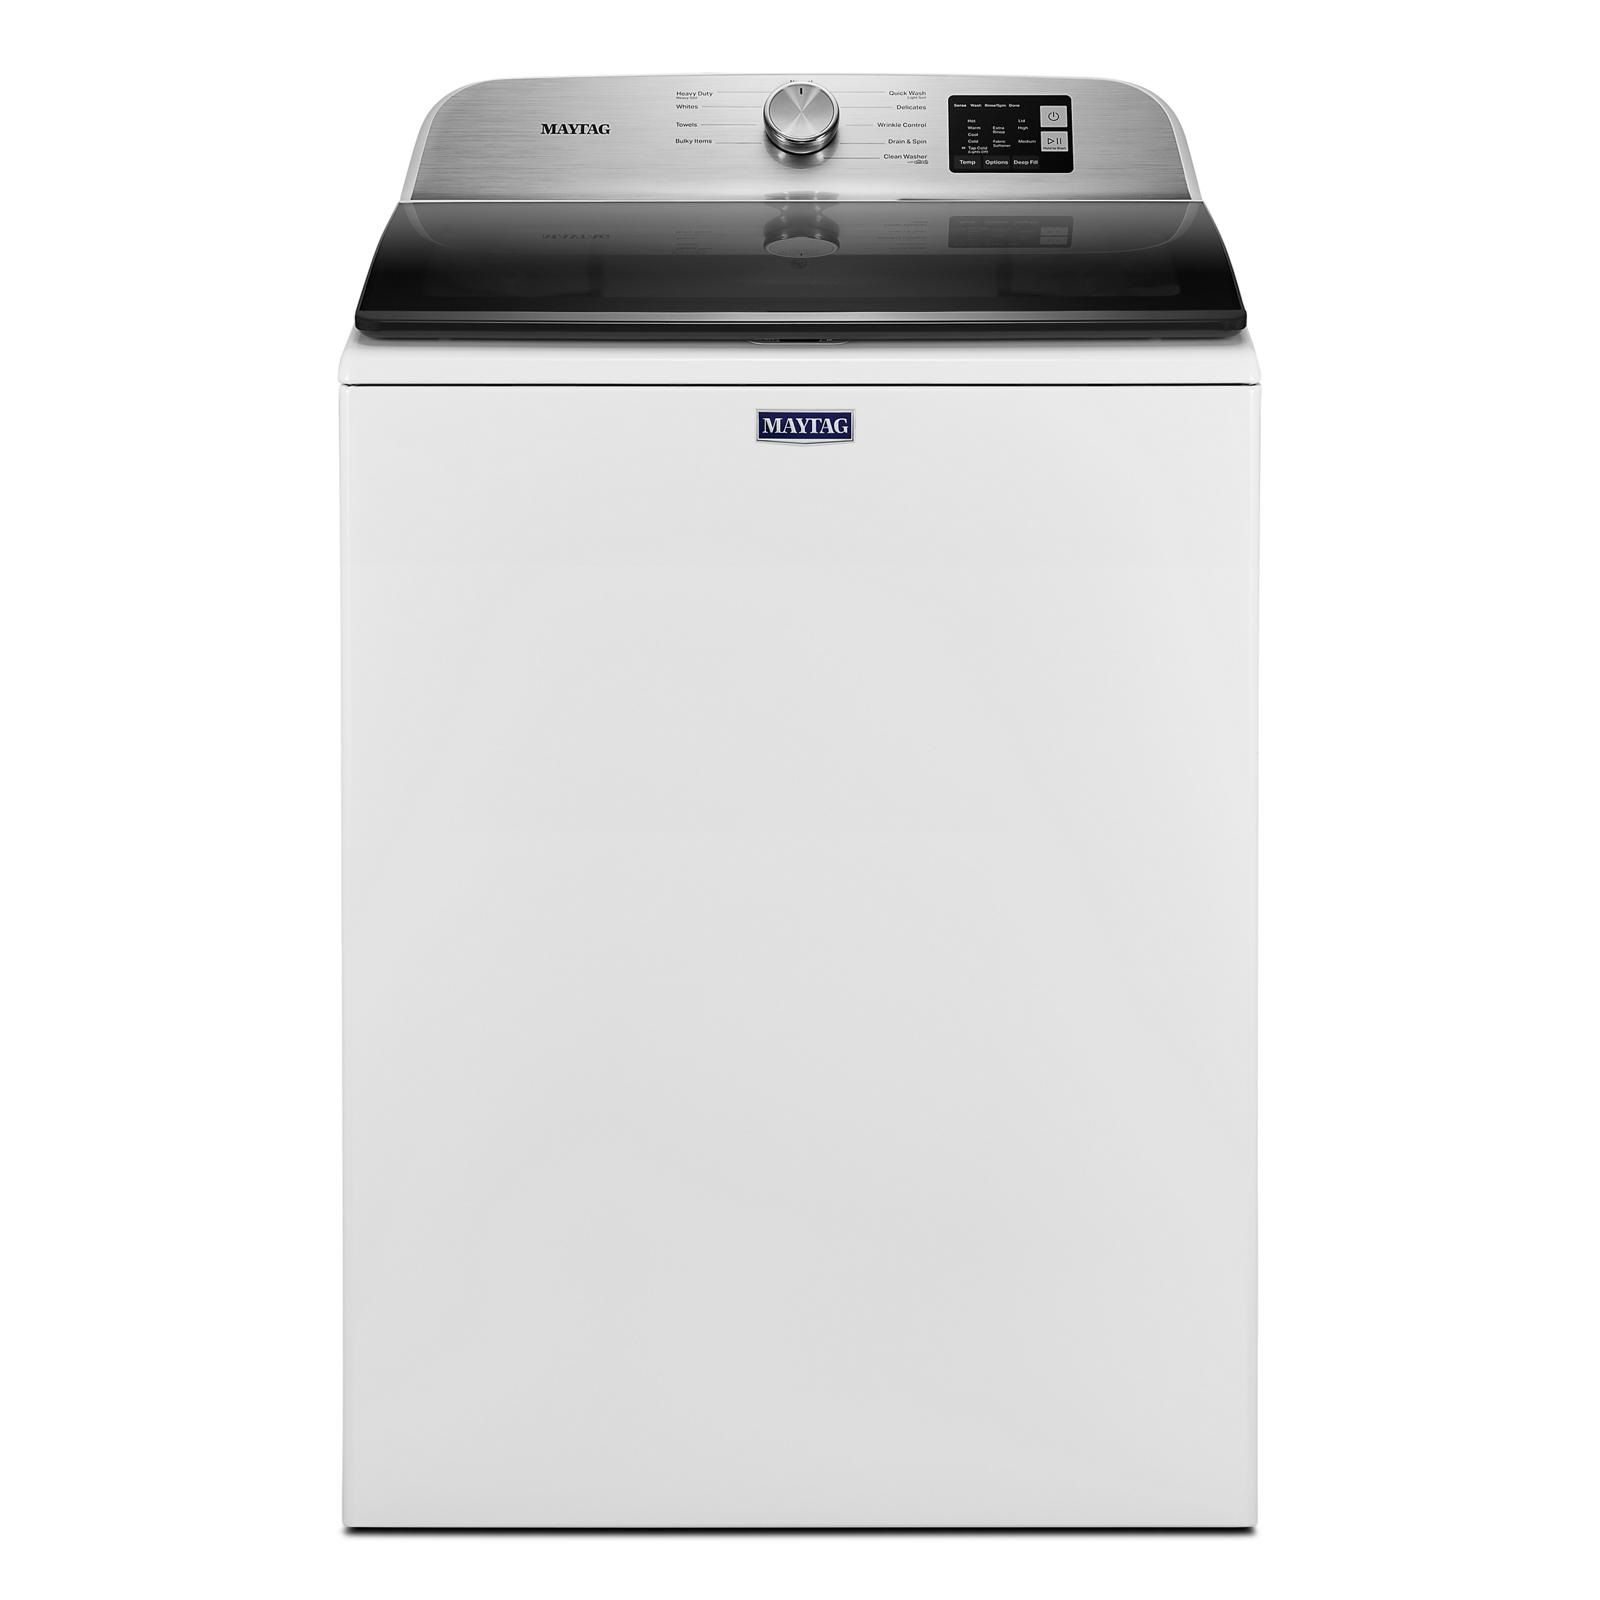 Maytag Washer MVW6200KW in White color showcased by Corbeil Electro Store